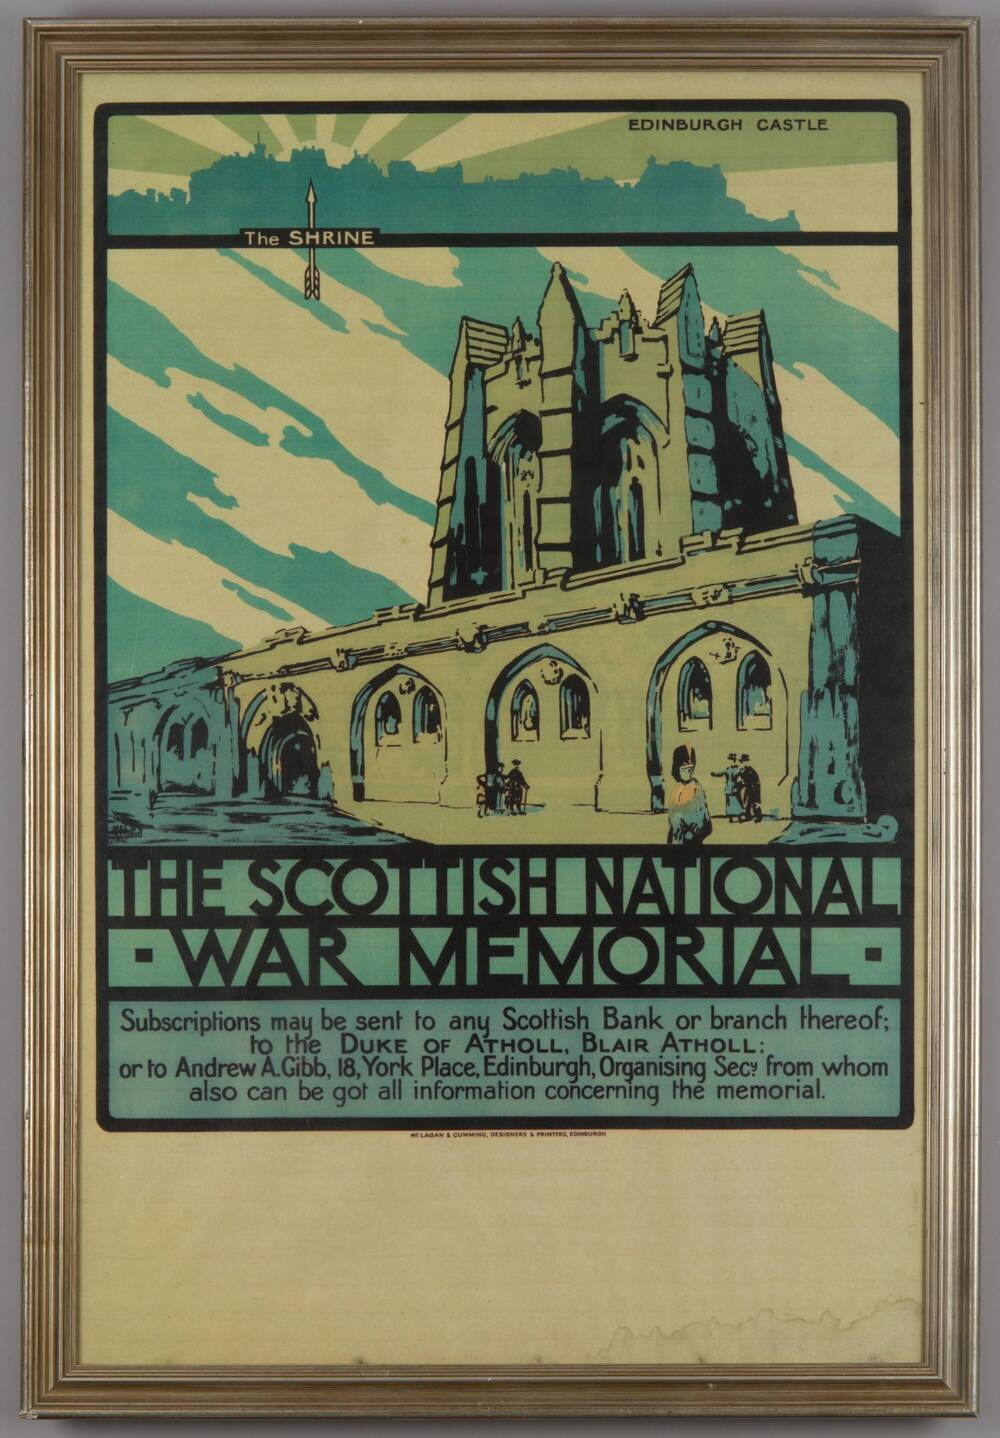 A poster for a Scottish National War Memorial, showing what it might look like.